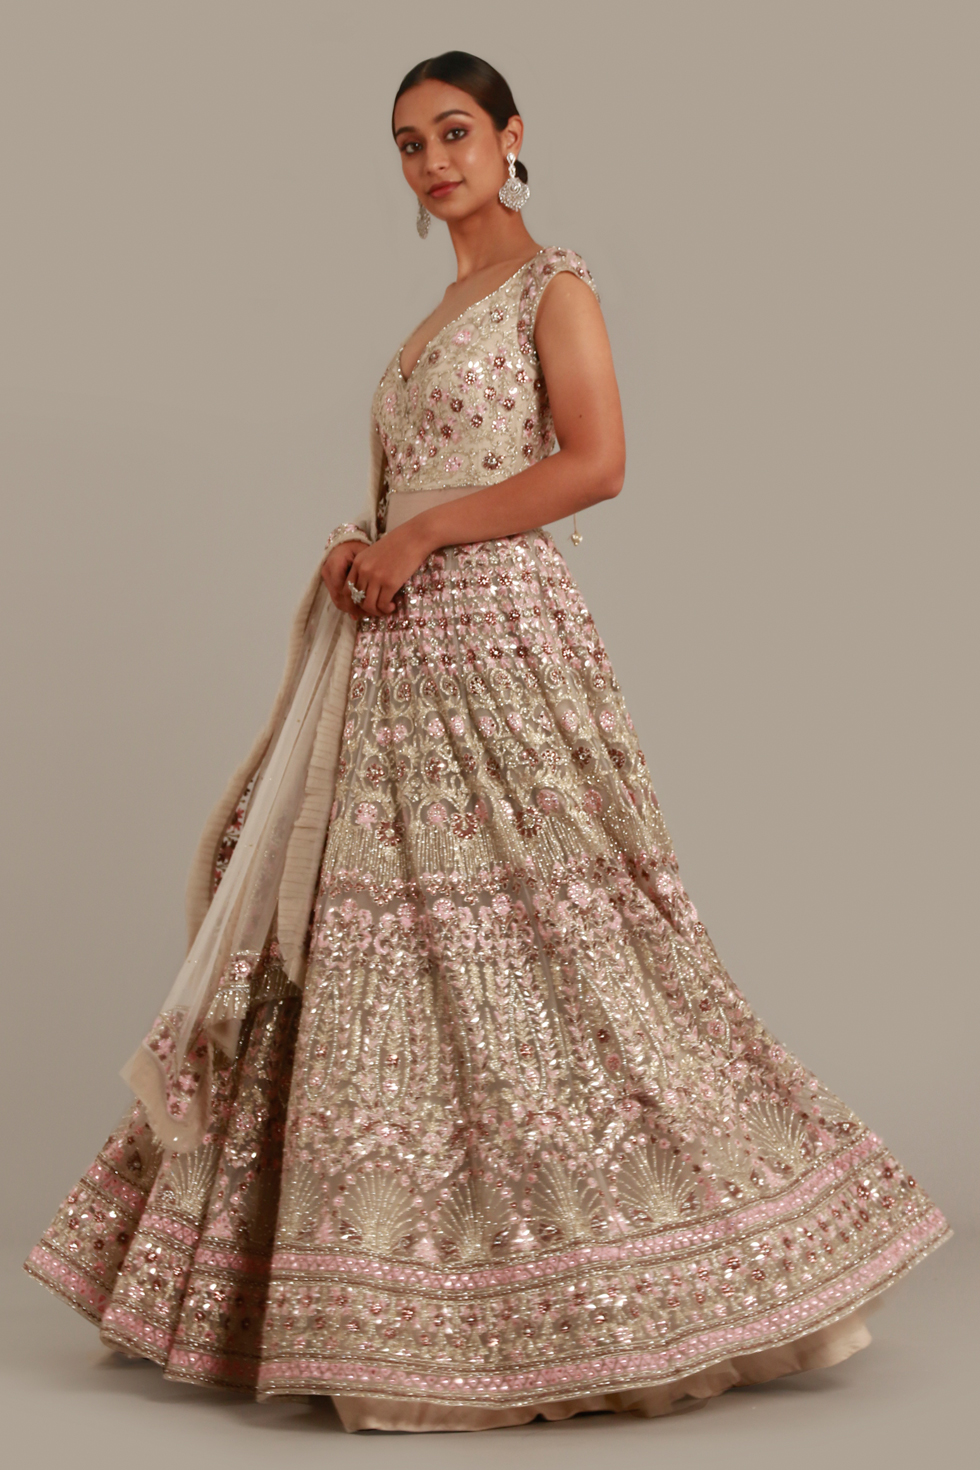 Grey gold Anarkali gown set with contrast multi coloured embroidery, silver highlights and matching dupatta with frill detail